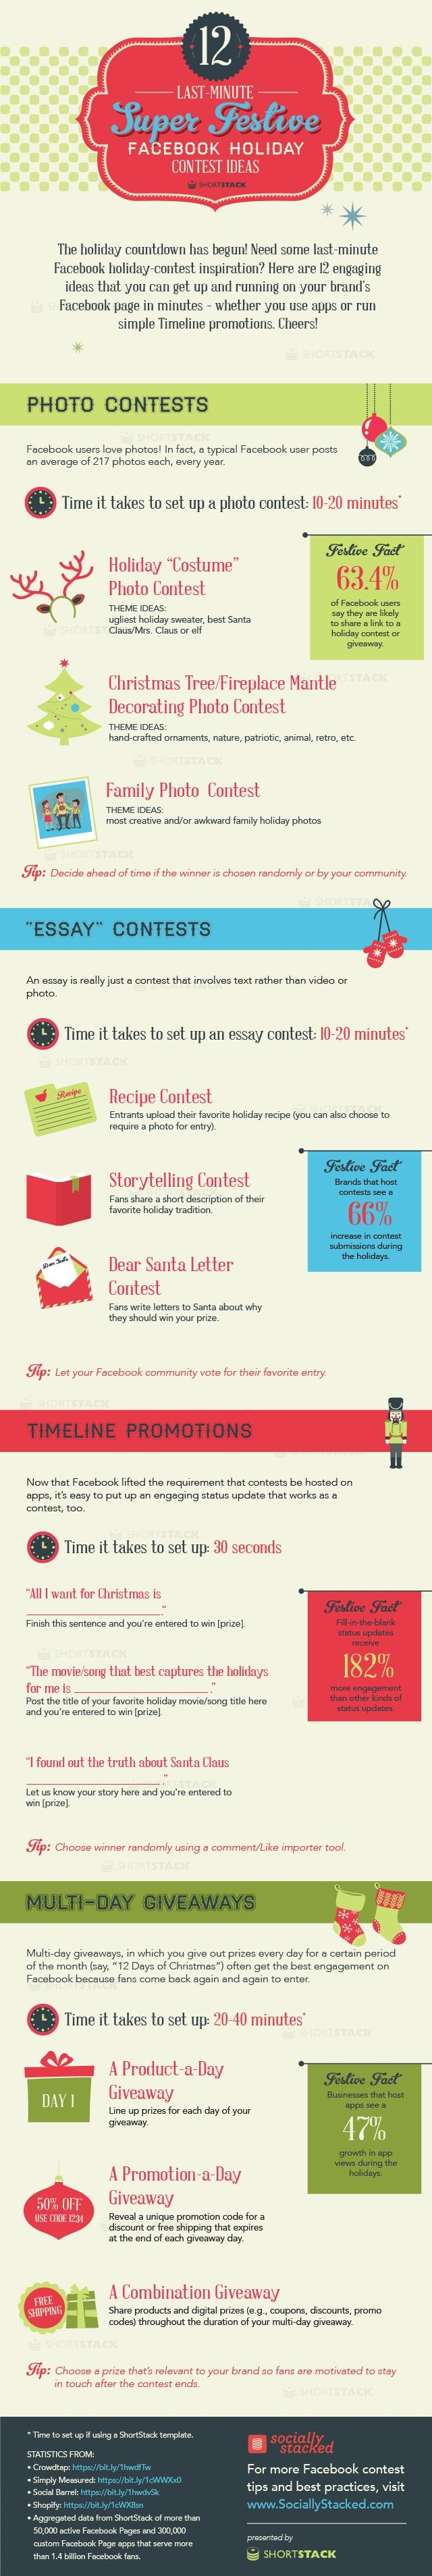 INFOGRAPHIC: 12 Facebook Contest Ideas For The Holidays - AllFacebook